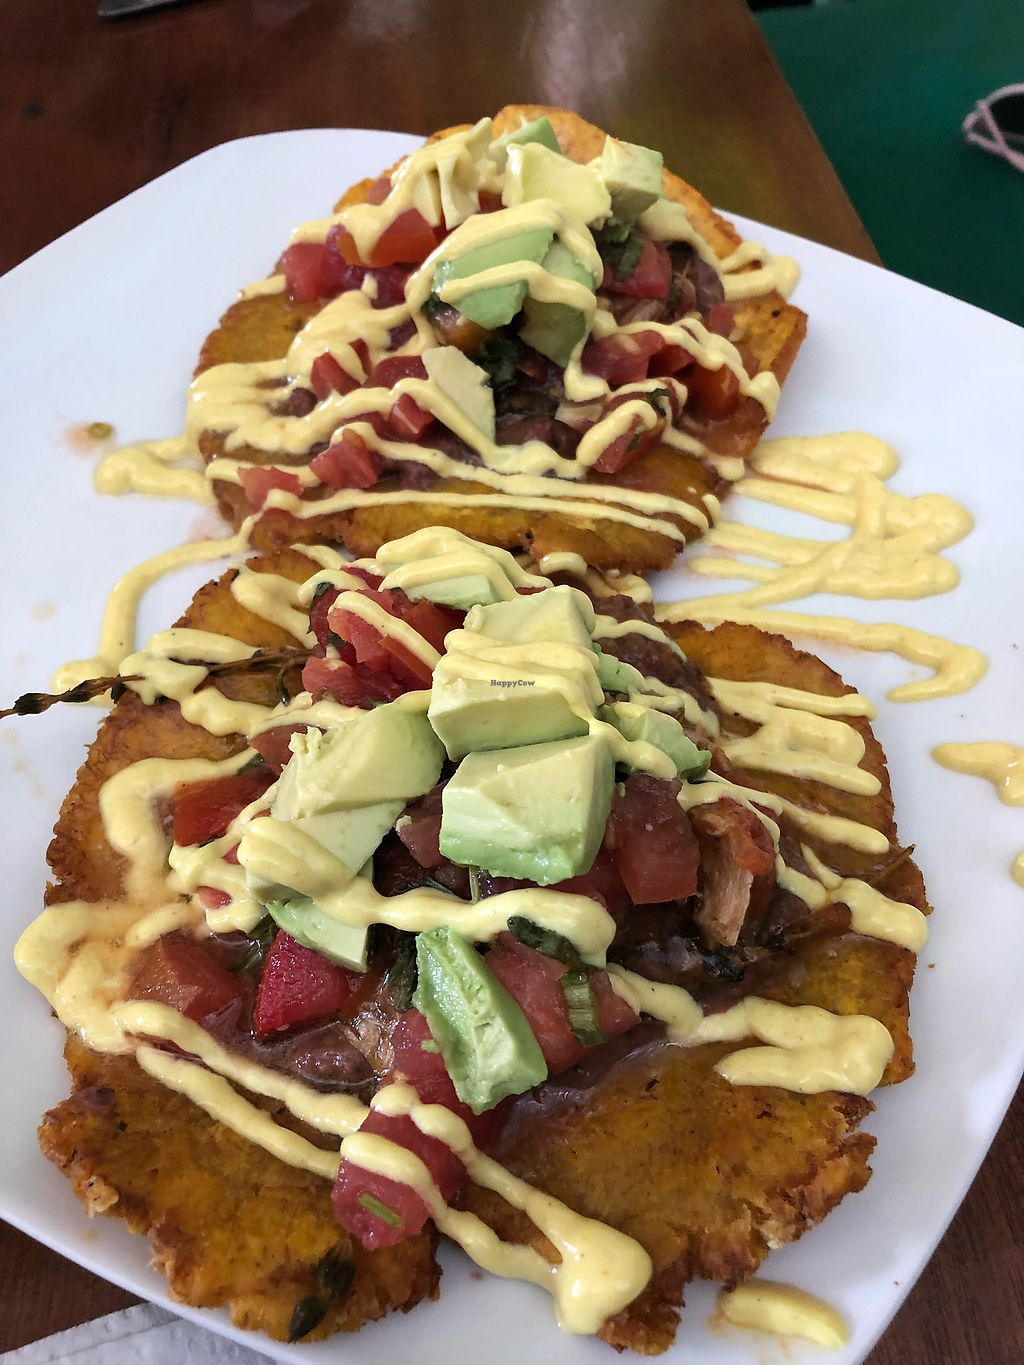 """Photo of La Esquina Vegetariana  by <a href=""""/members/profile/AlbertoXLush"""">AlbertoXLush</a> <br/>Patacones rellenos  <br/> March 4, 2018  - <a href='/contact/abuse/image/77658/366814'>Report</a>"""